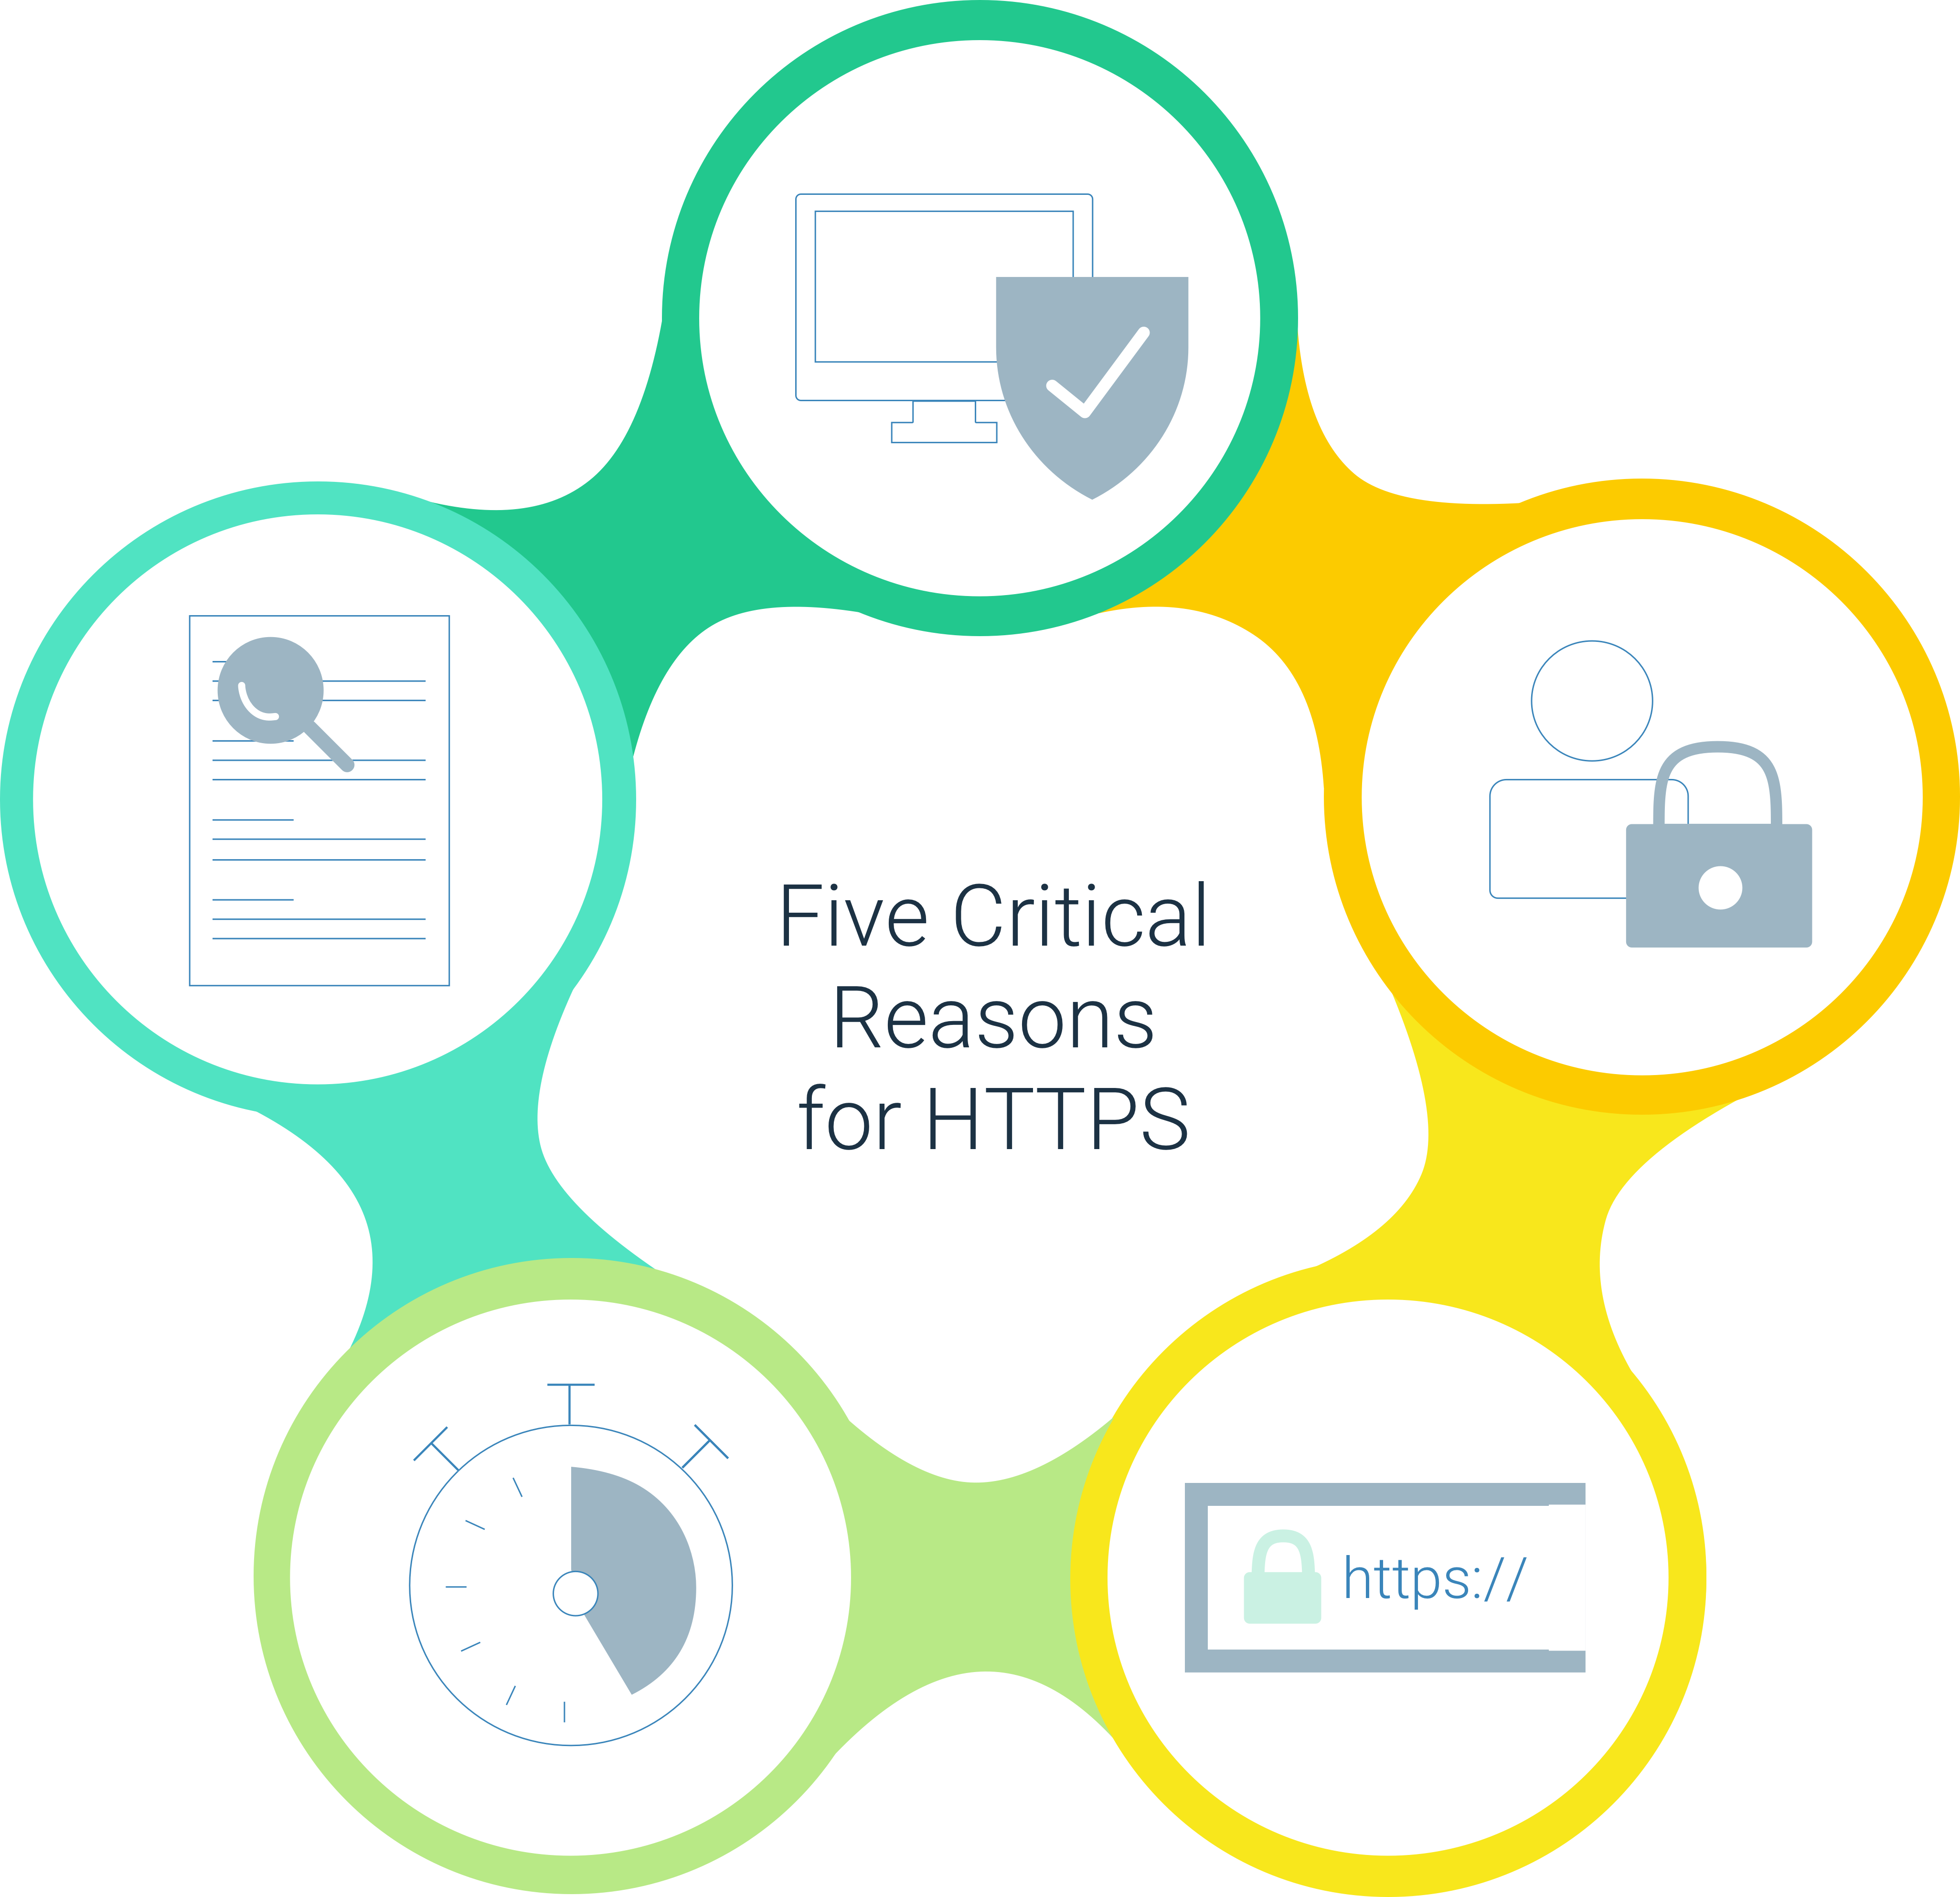 five reasons to use a SSL certificate and secure your URL with https